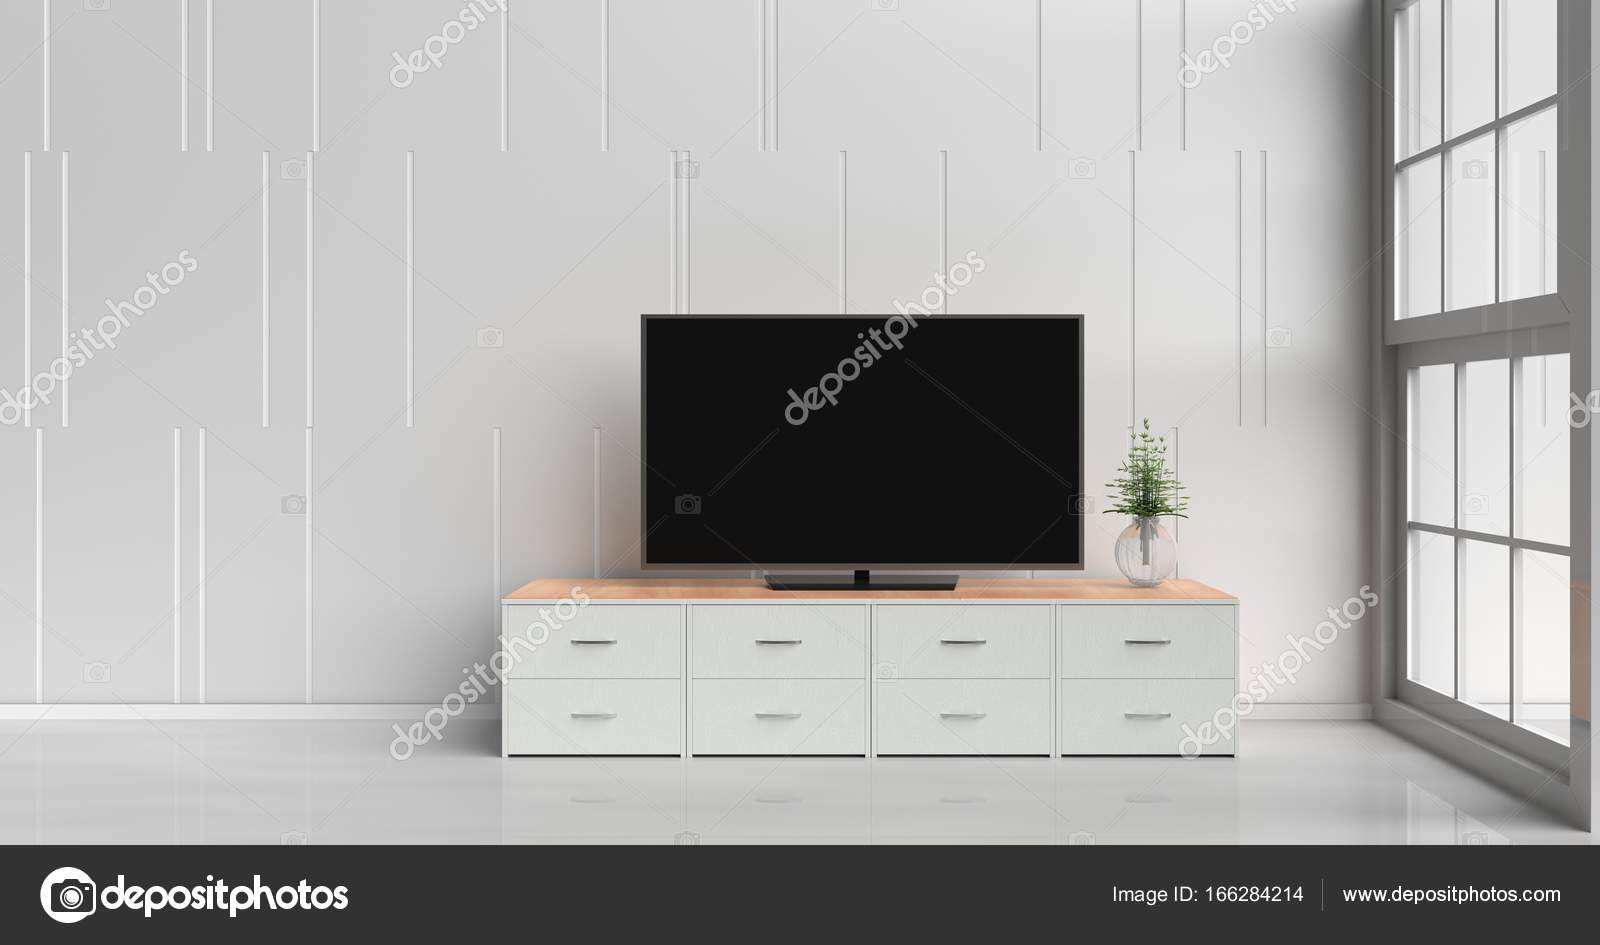 Smart tv on tv stand in white living room decorated with wood white ...